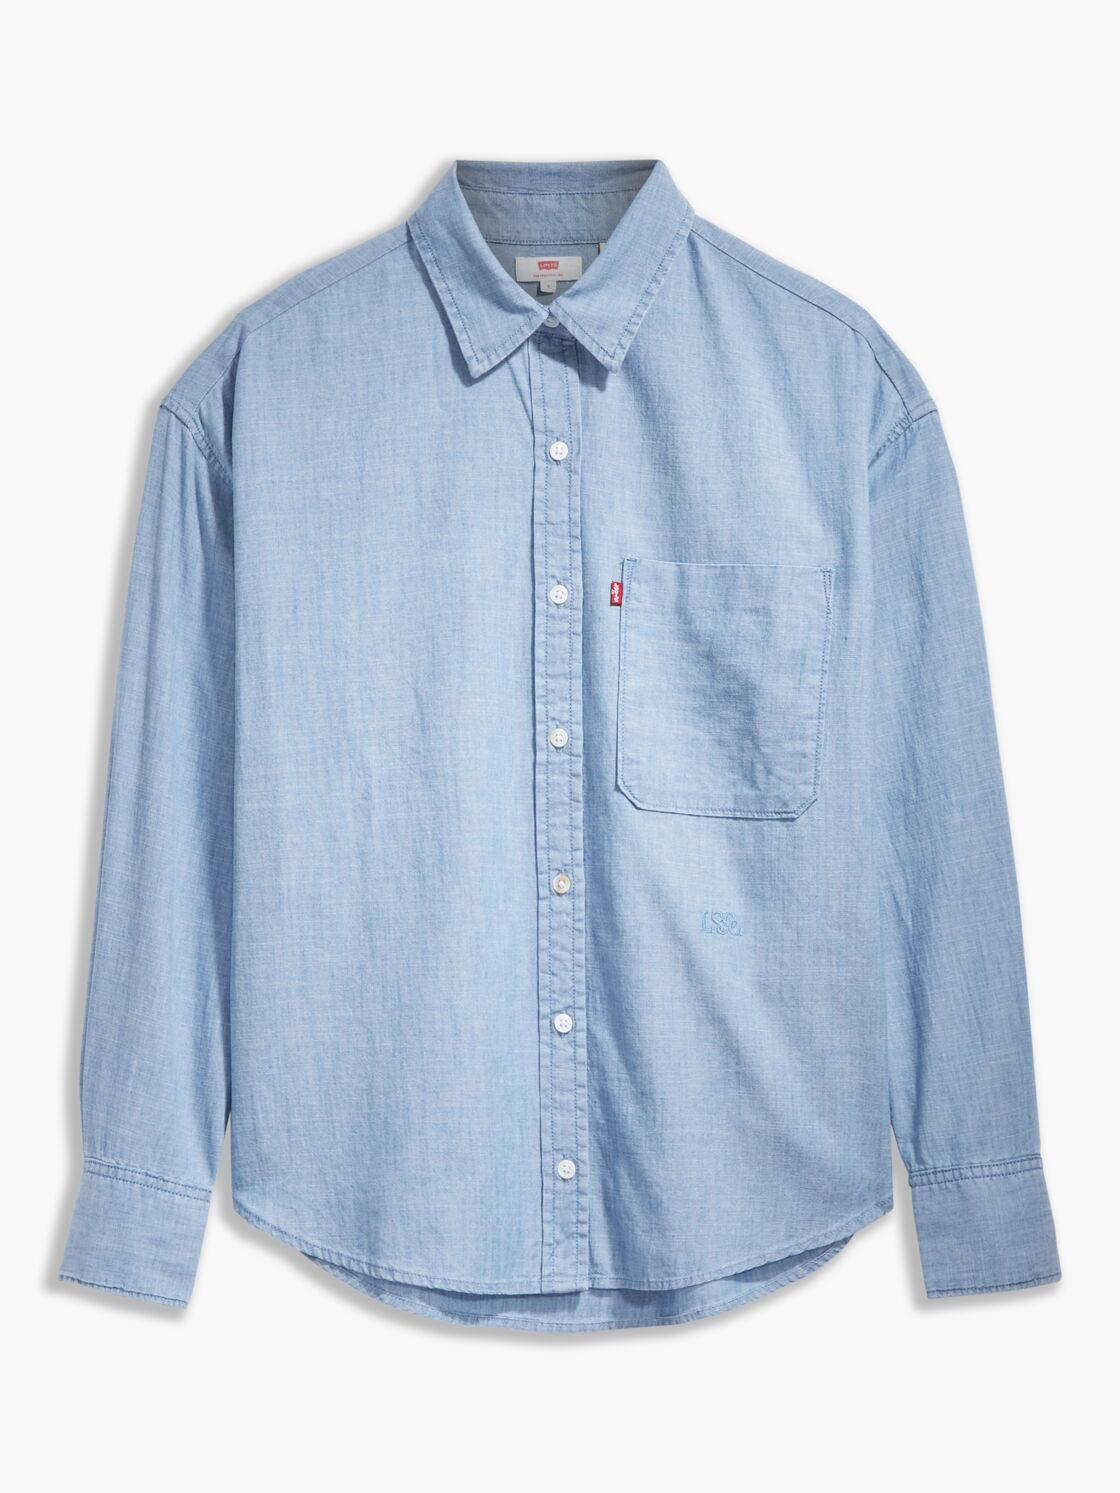 l'indémodable chemise jean de la collection Unlabeled de Levi's (69 €).